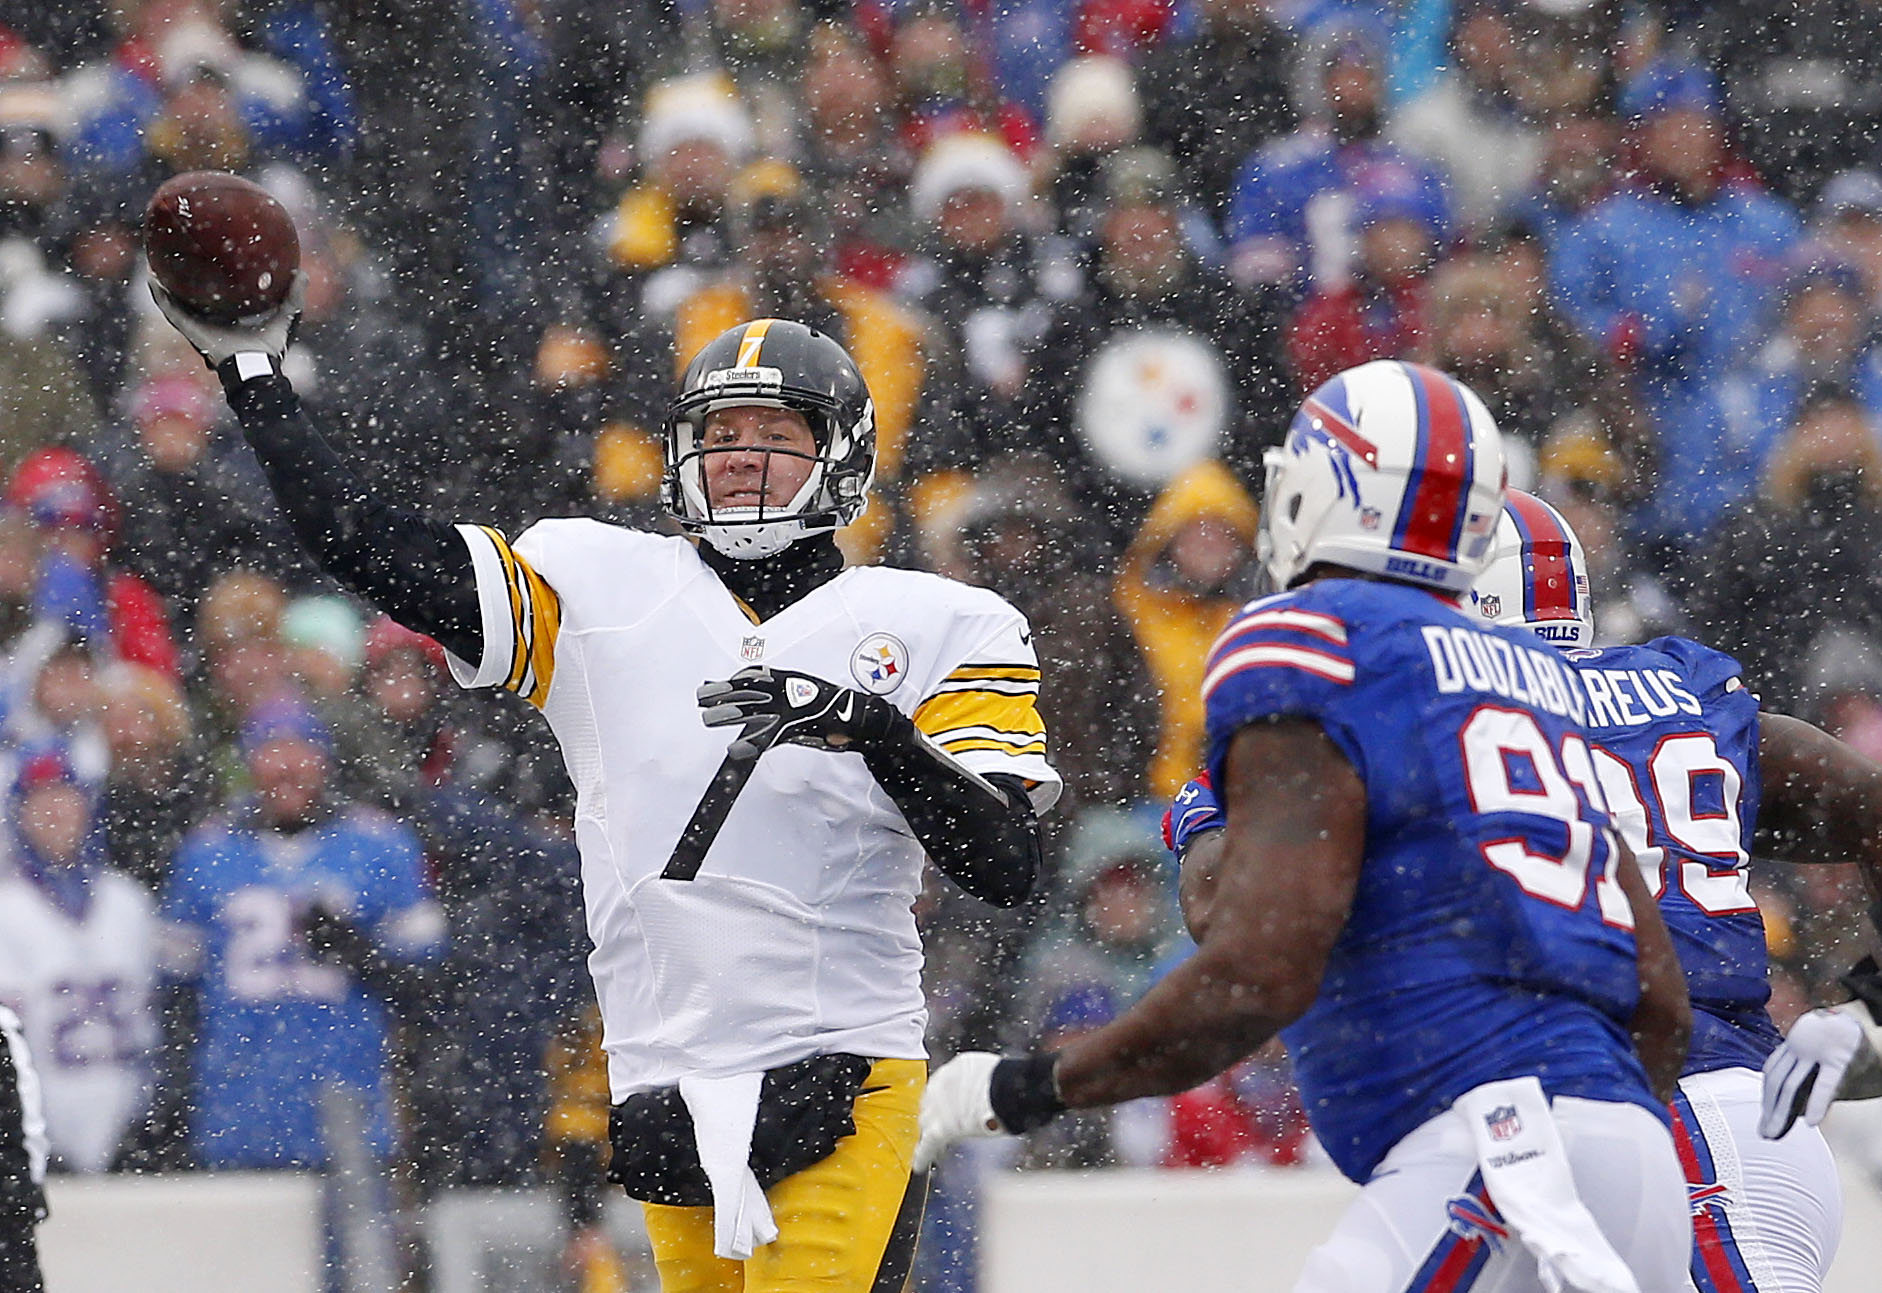 Ben Roethlisberger and the Steelers can clinch the AFC North with a victory over the Ravens Sunday. (Mark Mulville/Buffalo News)